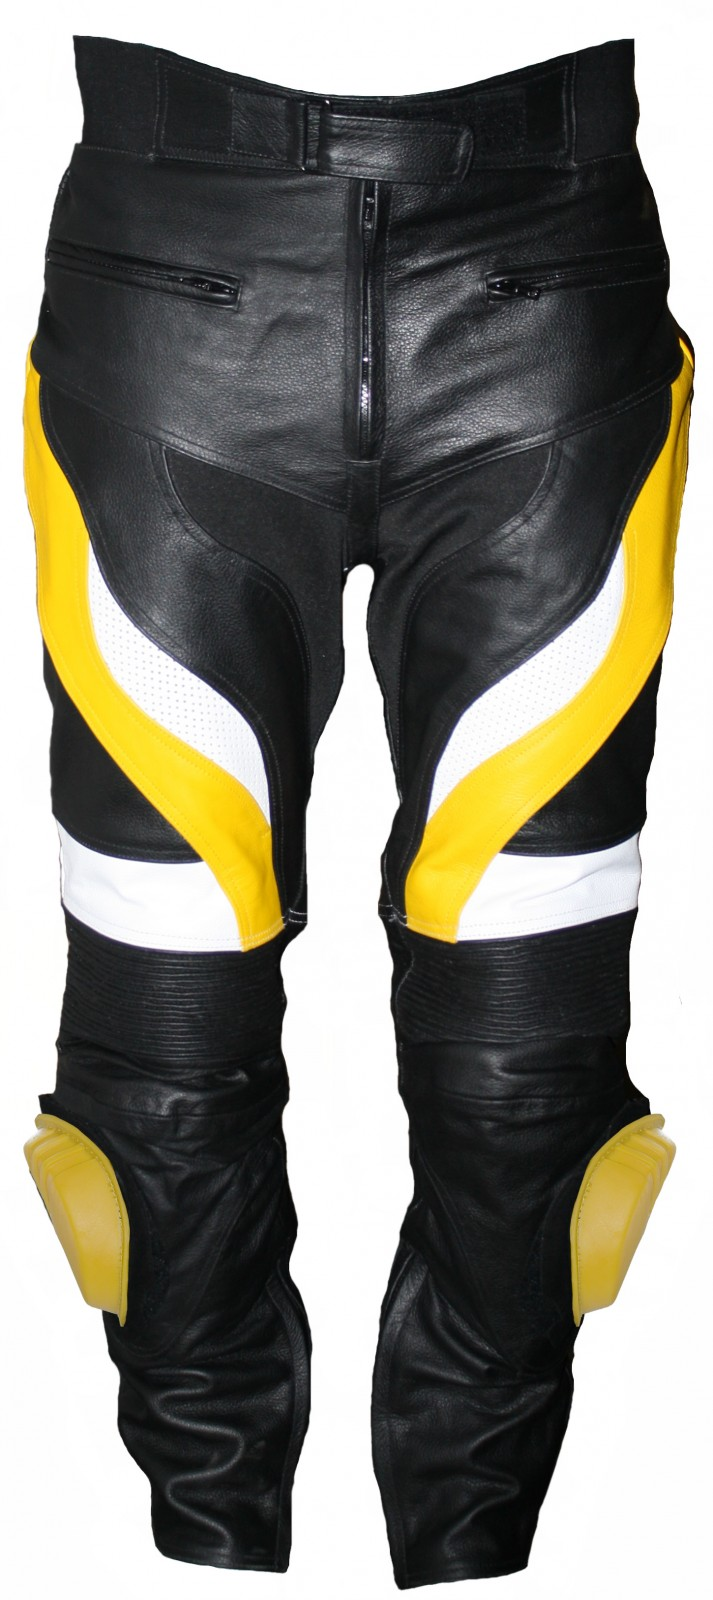 herren motorradhose motorrad biker racing lederhose. Black Bedroom Furniture Sets. Home Design Ideas